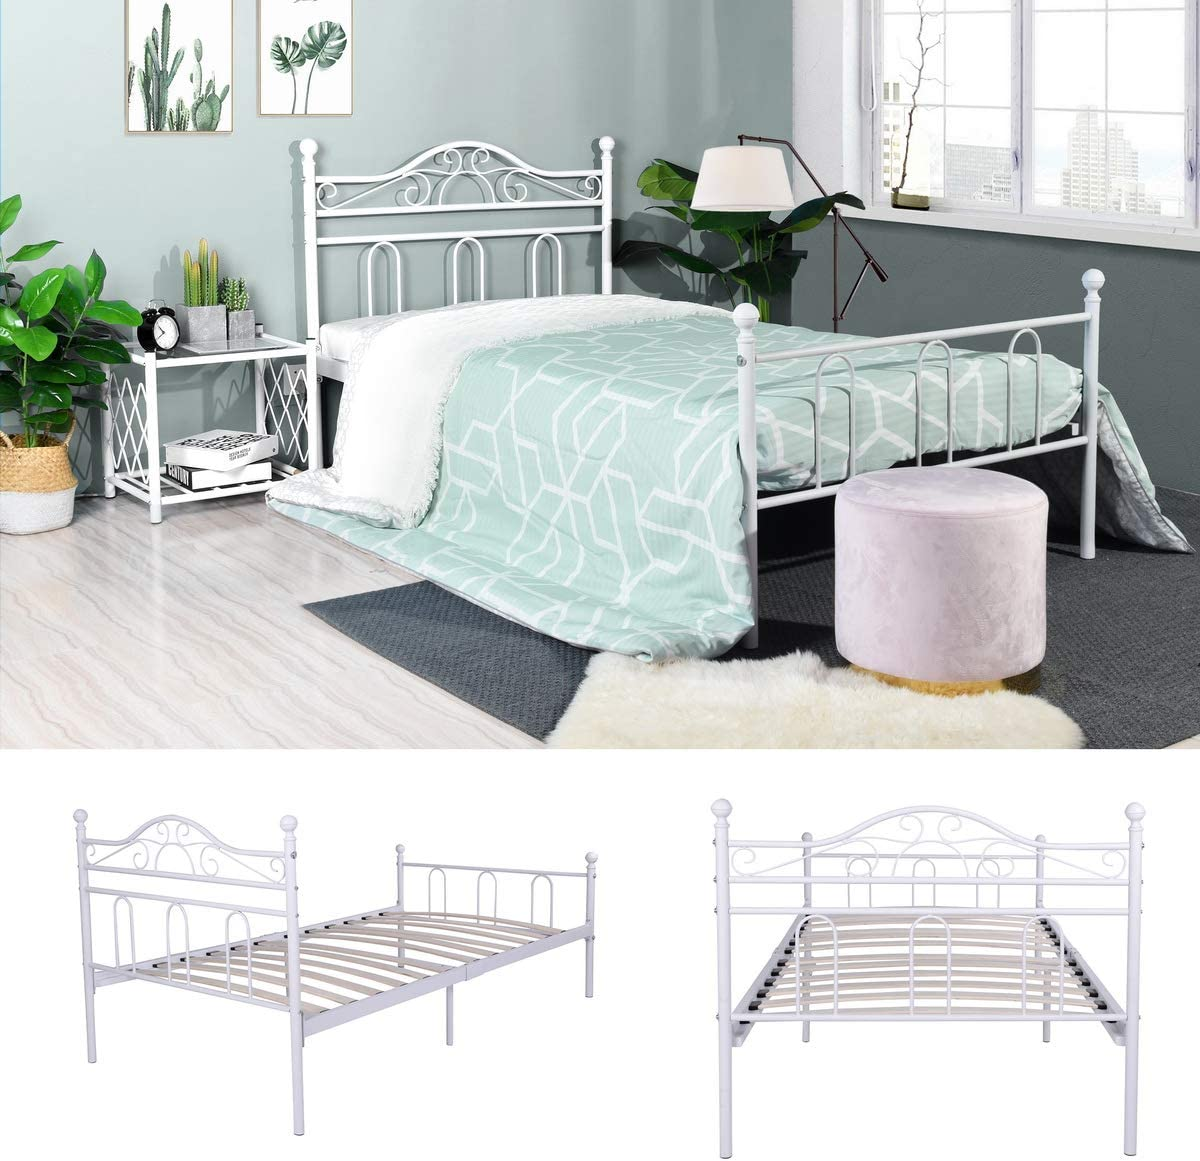 Aingoo Single Bed Frame with Wood Slats Solid 3ft Metal Bed with Classical Headboard for Adults Children Kids Fits for 90 190 cm Mattress White